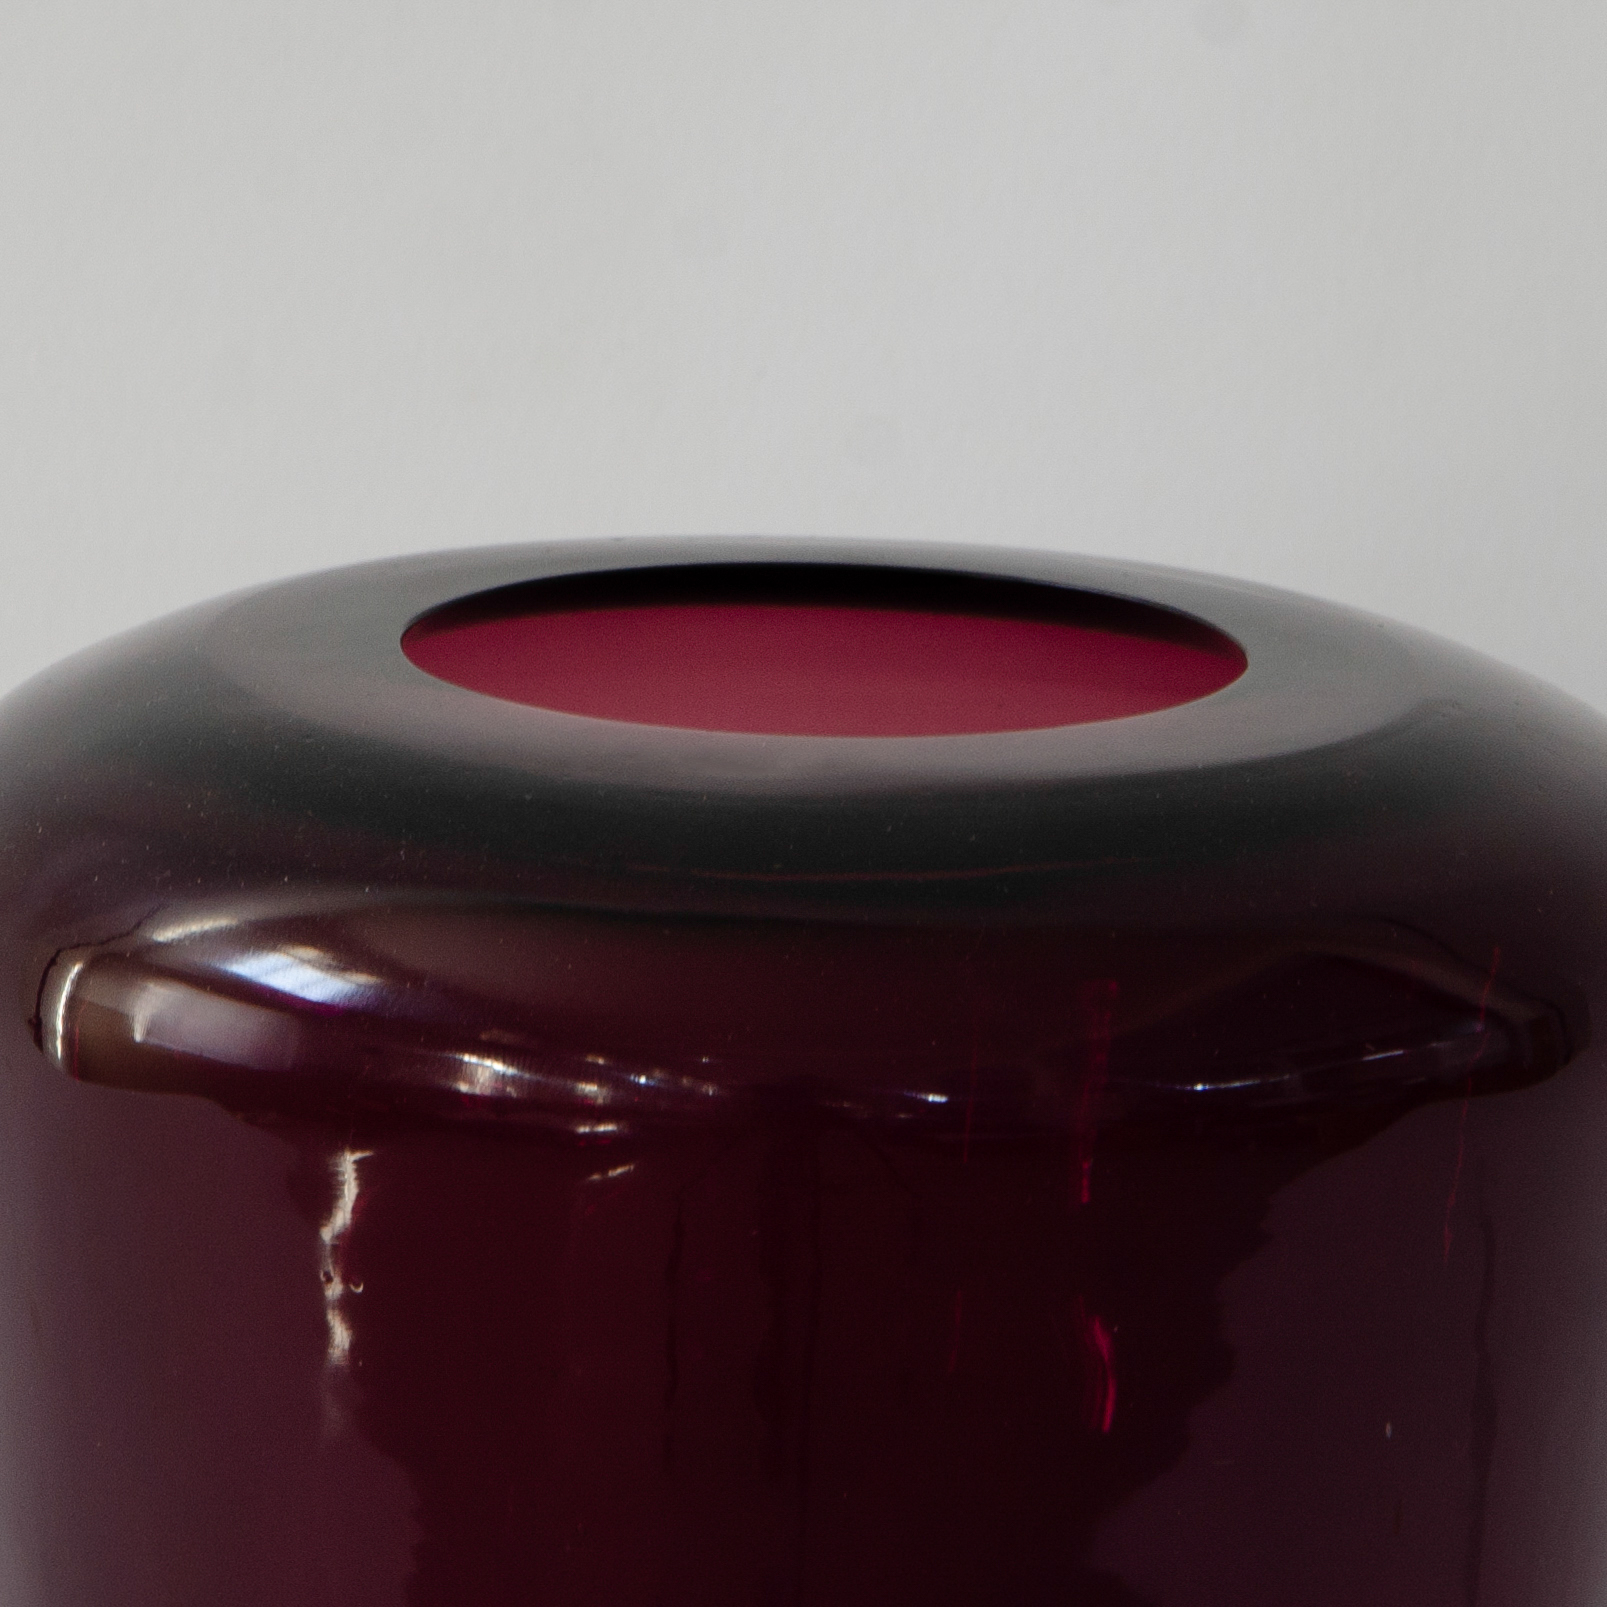 Lantern Glass Candle Holder - Smoked Burgundy